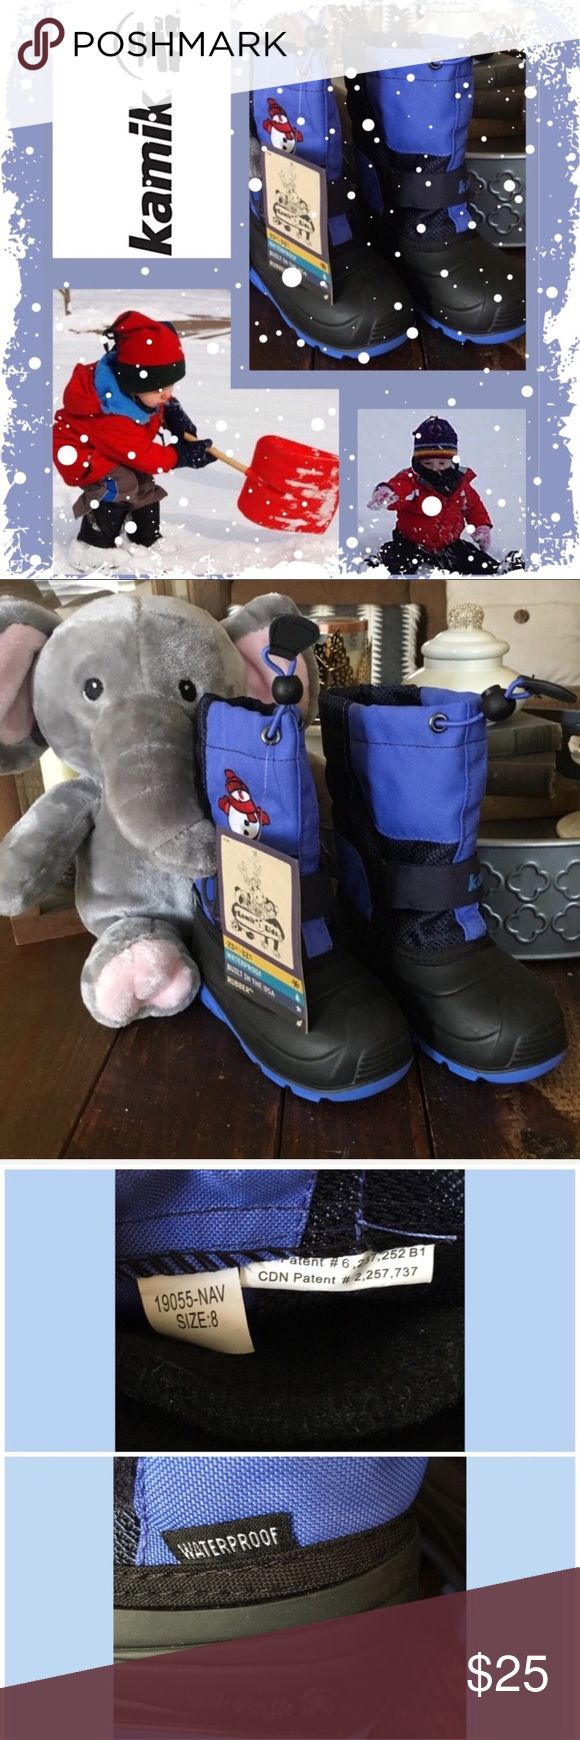 NWT Kamik Winter Boots Toddler New with adorable embroidered snowman.  Waterproof, removable liner & made in the USA!  1st photo contains image from the web for style ideas   Smoke free, hypoallergenic pet friendly home; we have a Morkie    No props included Kamik Shoes Rain & Snow Boots